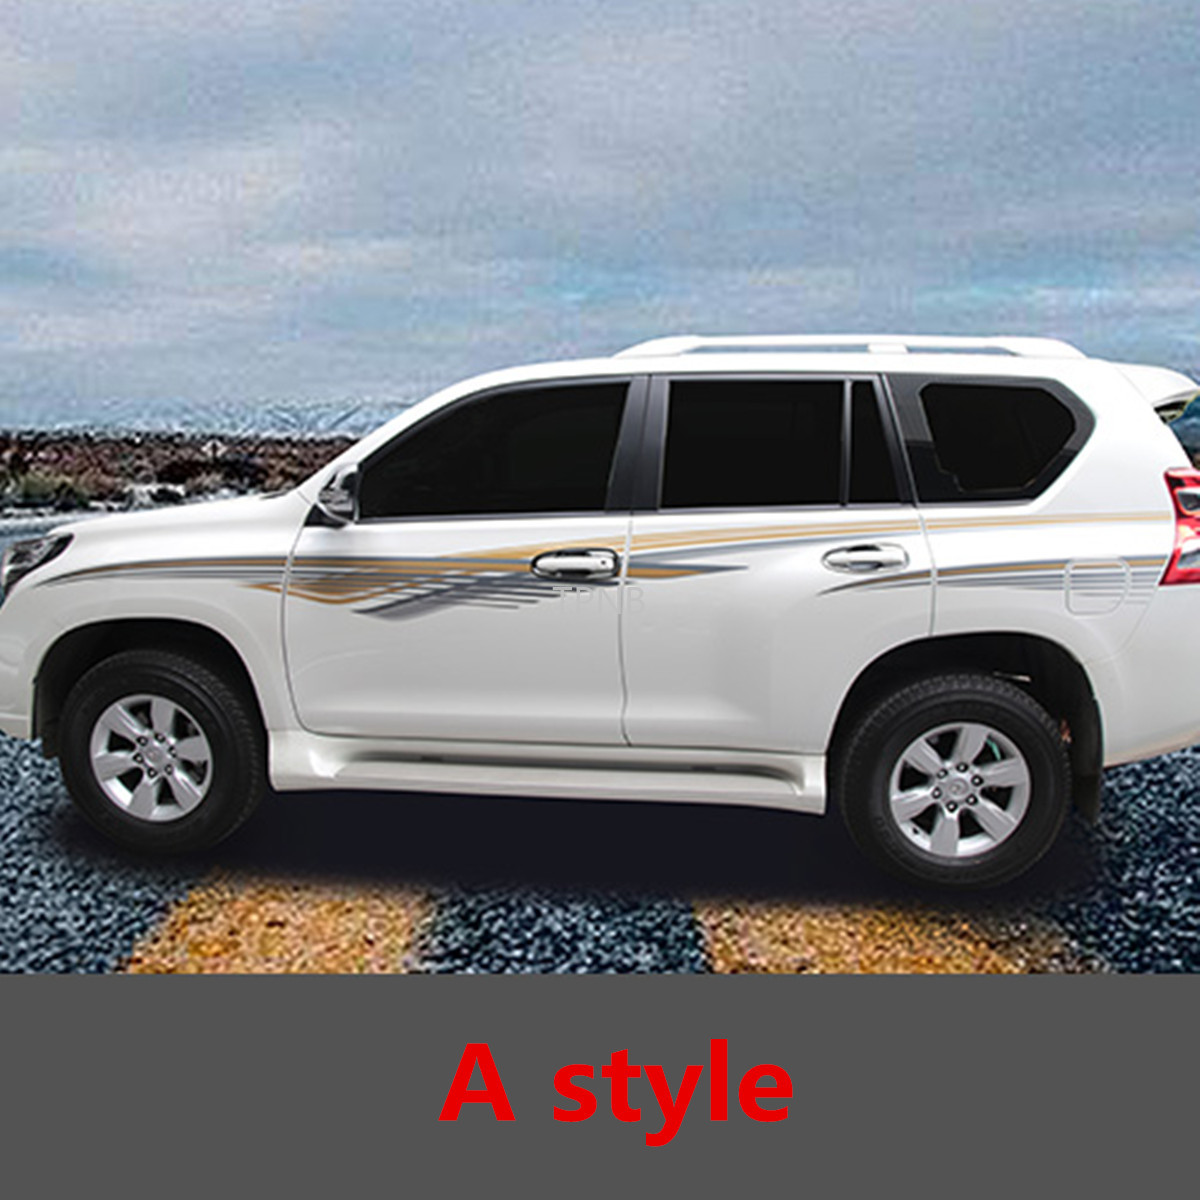 Body Sticker Pull for <font><b>Toyota</b></font> Land Cruiser <font><b>Prado</b></font> 150 2010 2011 2012 2013 2014 2015 2016 2017 2018 <font><b>2019</b></font> <font><b>Accessories</b></font> image